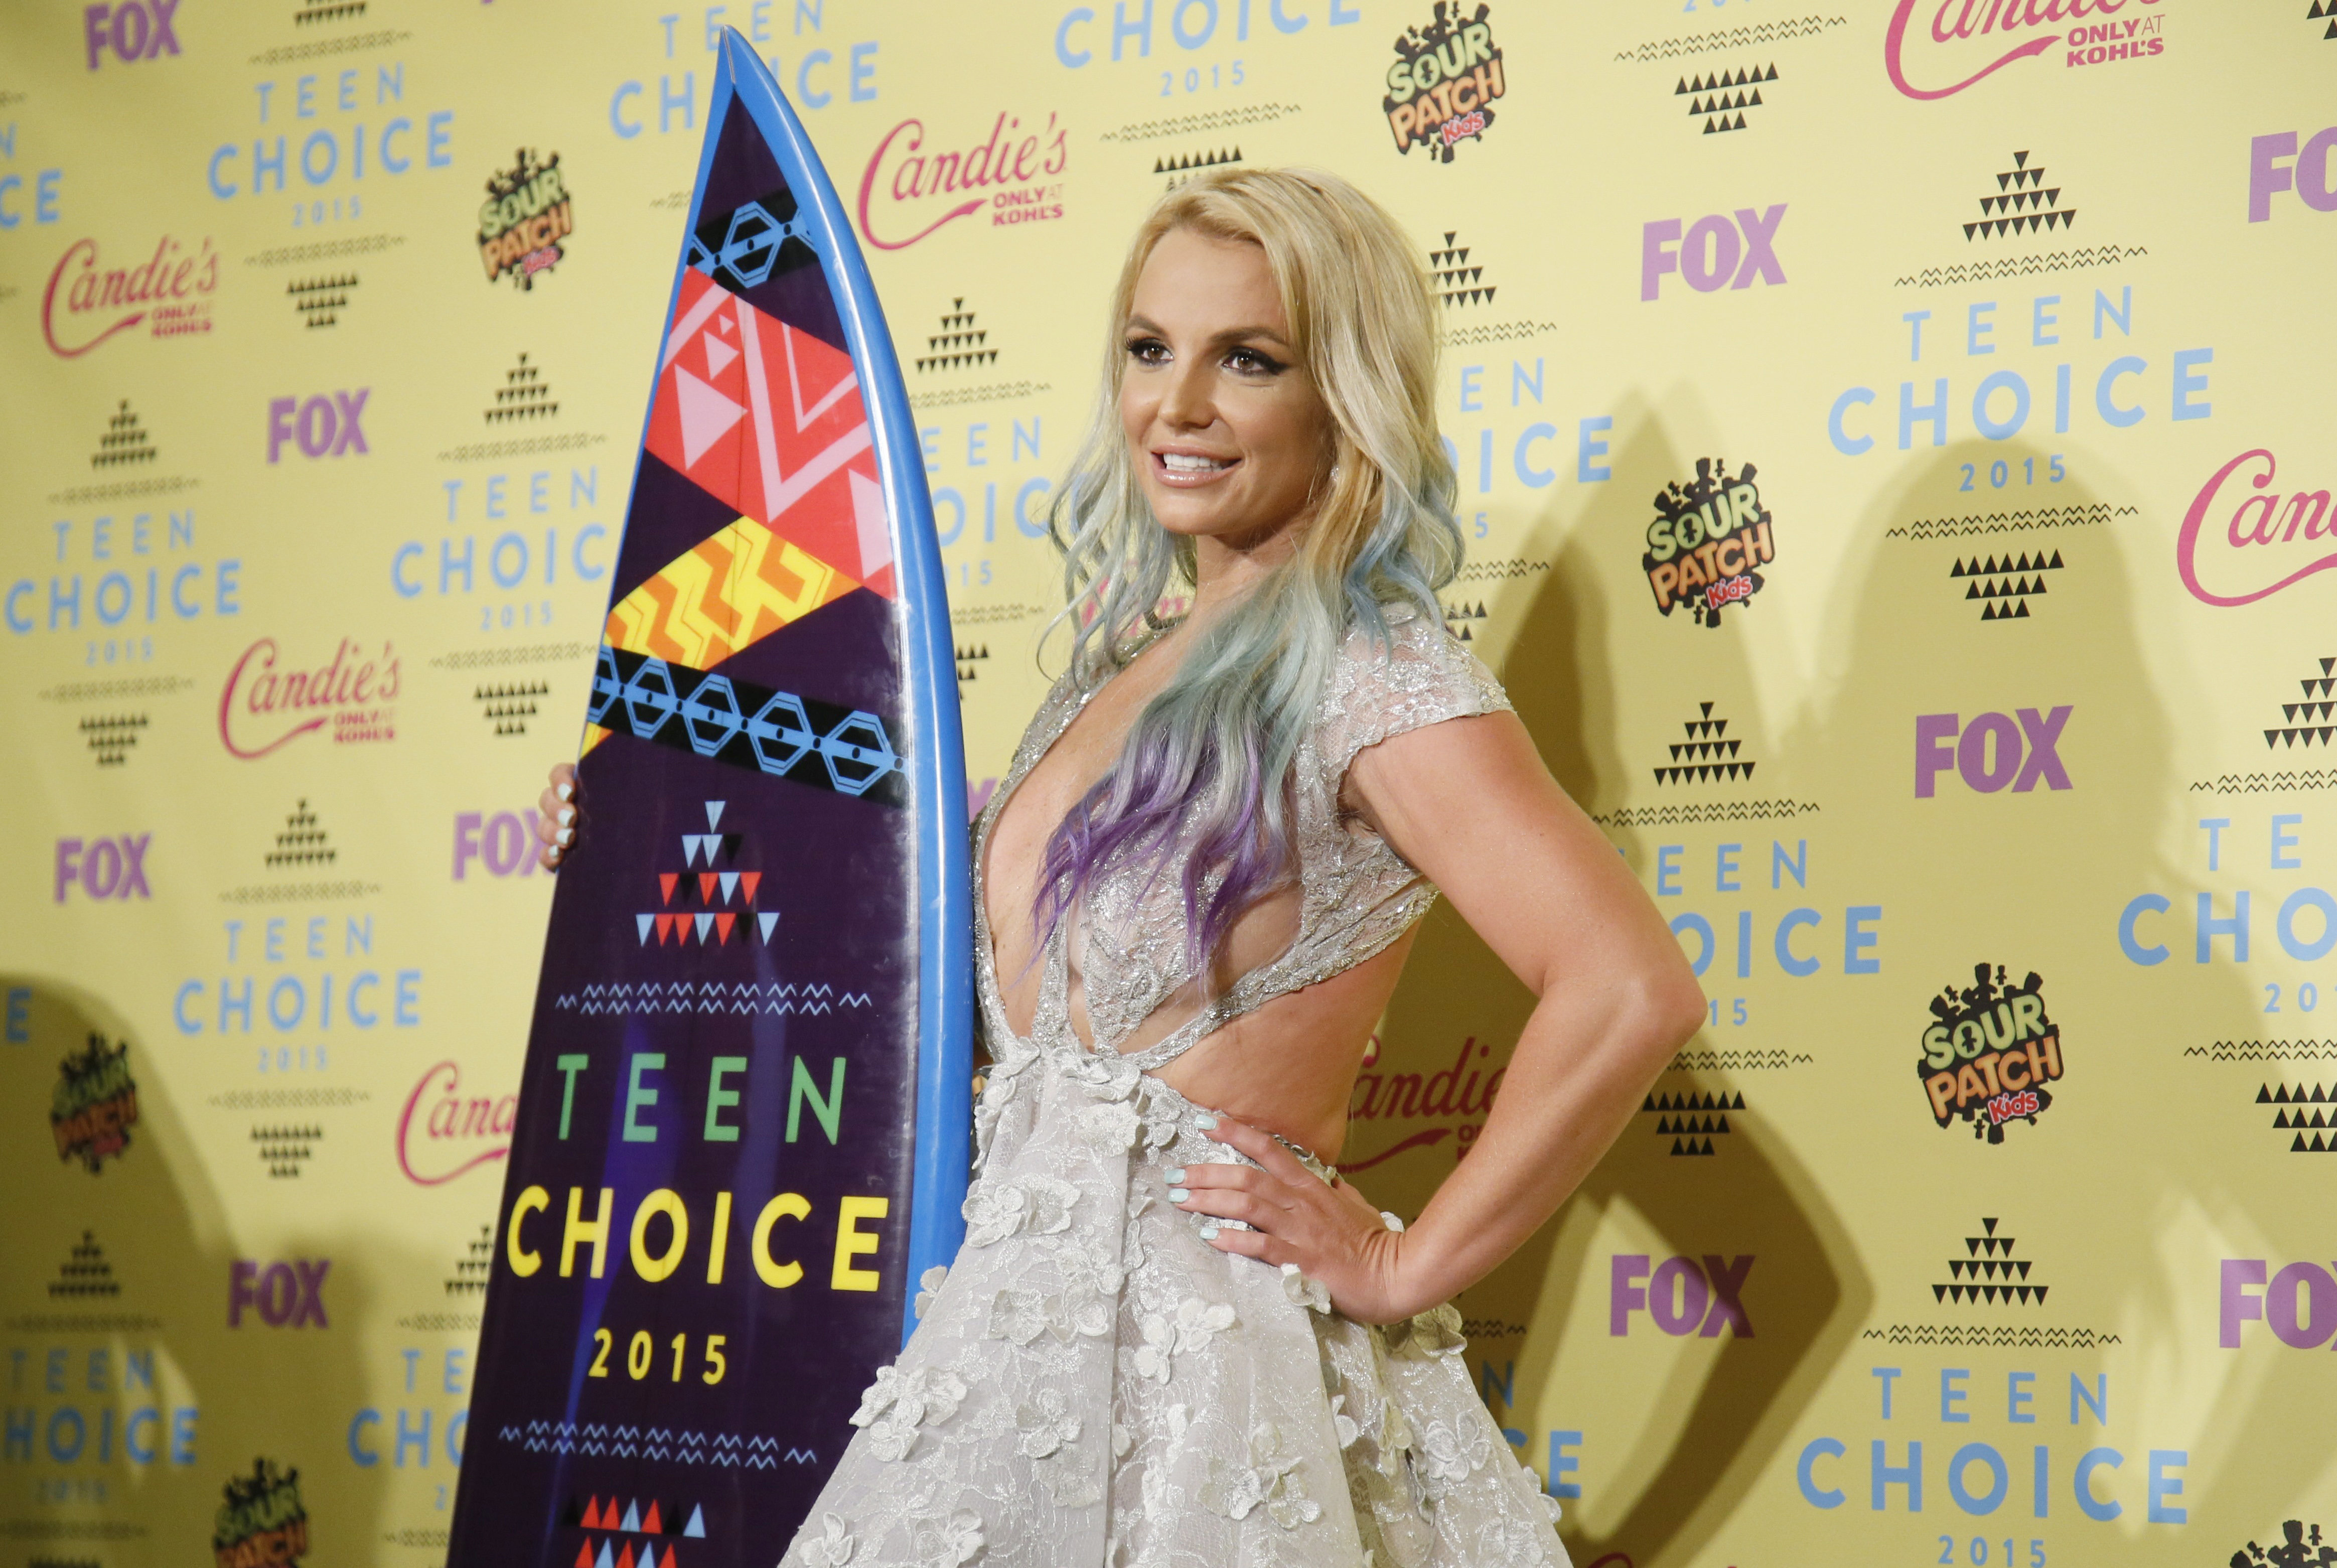 Singer Britney Spears poses backstage with her Choice Style Icon award at the 2015 Teen Choice Awards in Los Angeles, California, United States August 16, 2015. REUTERS/Danny Moloshok